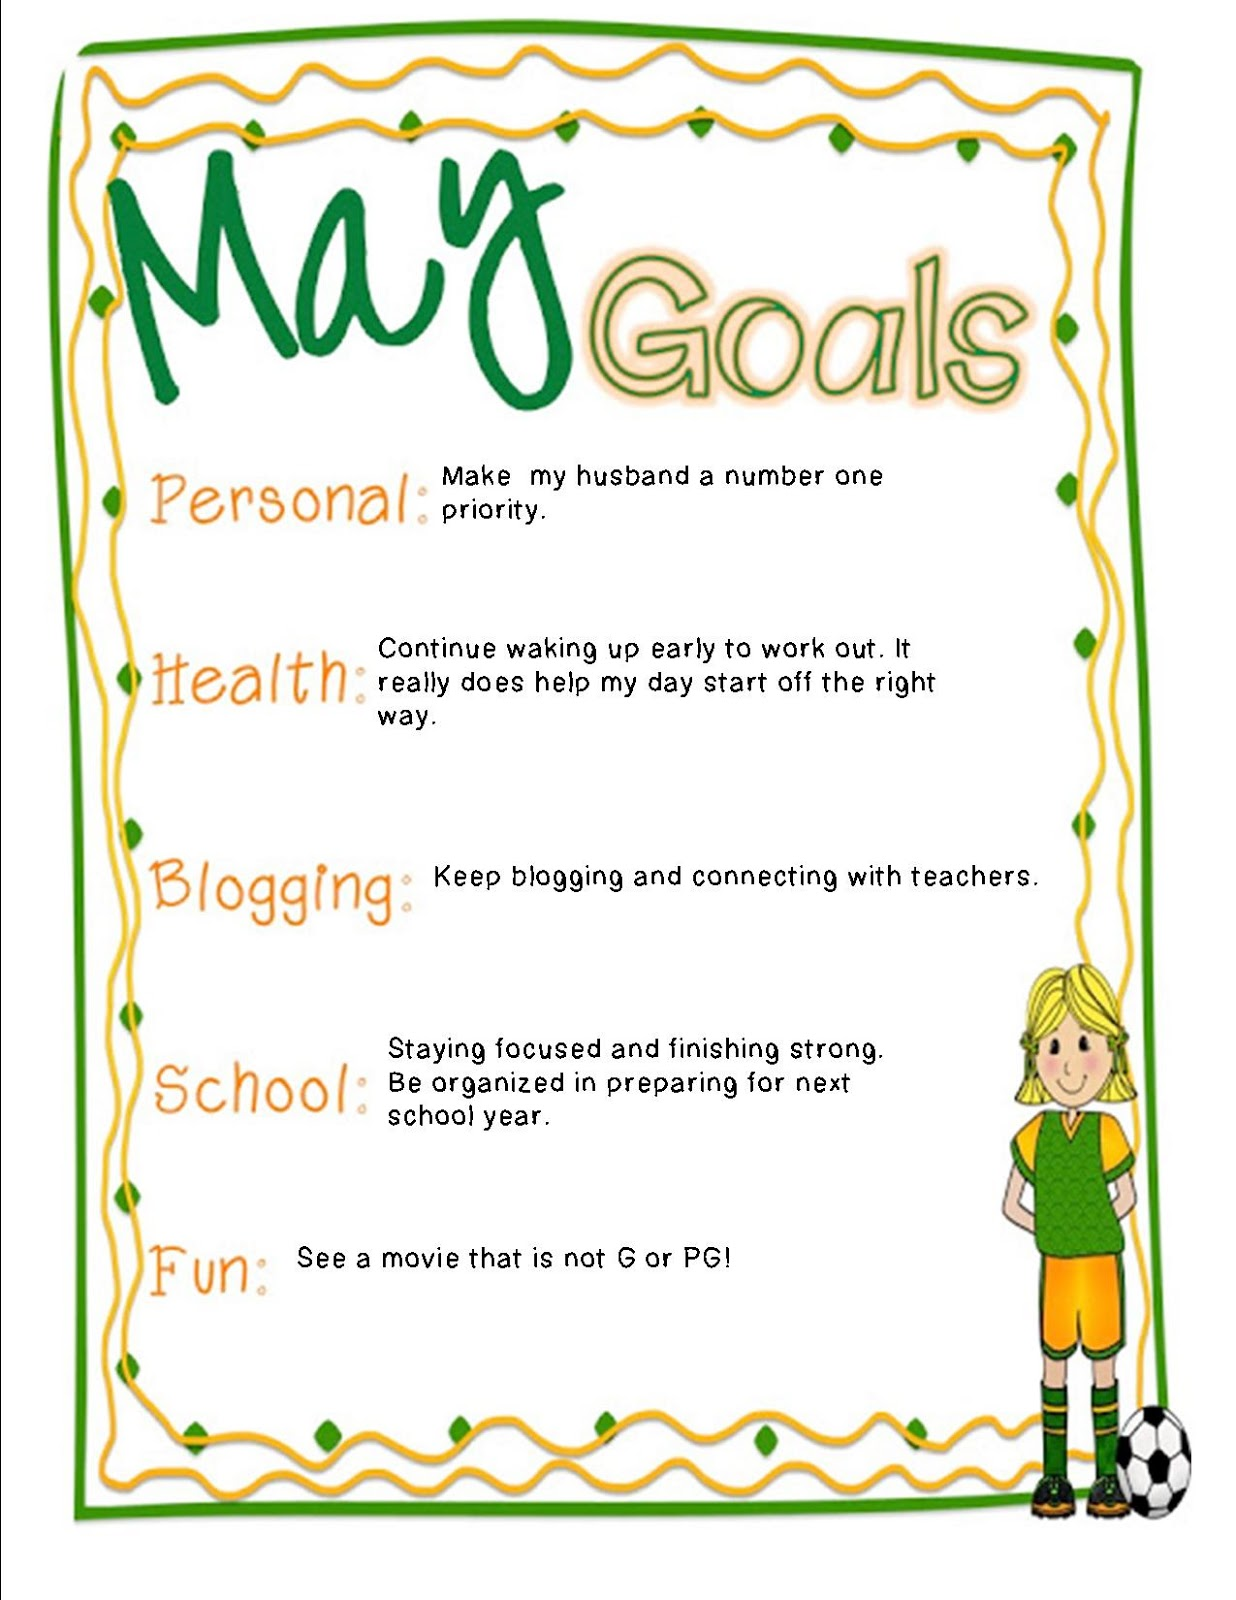 hodges herald goals linky party i am linking jess over at i heart recess to set some goals for